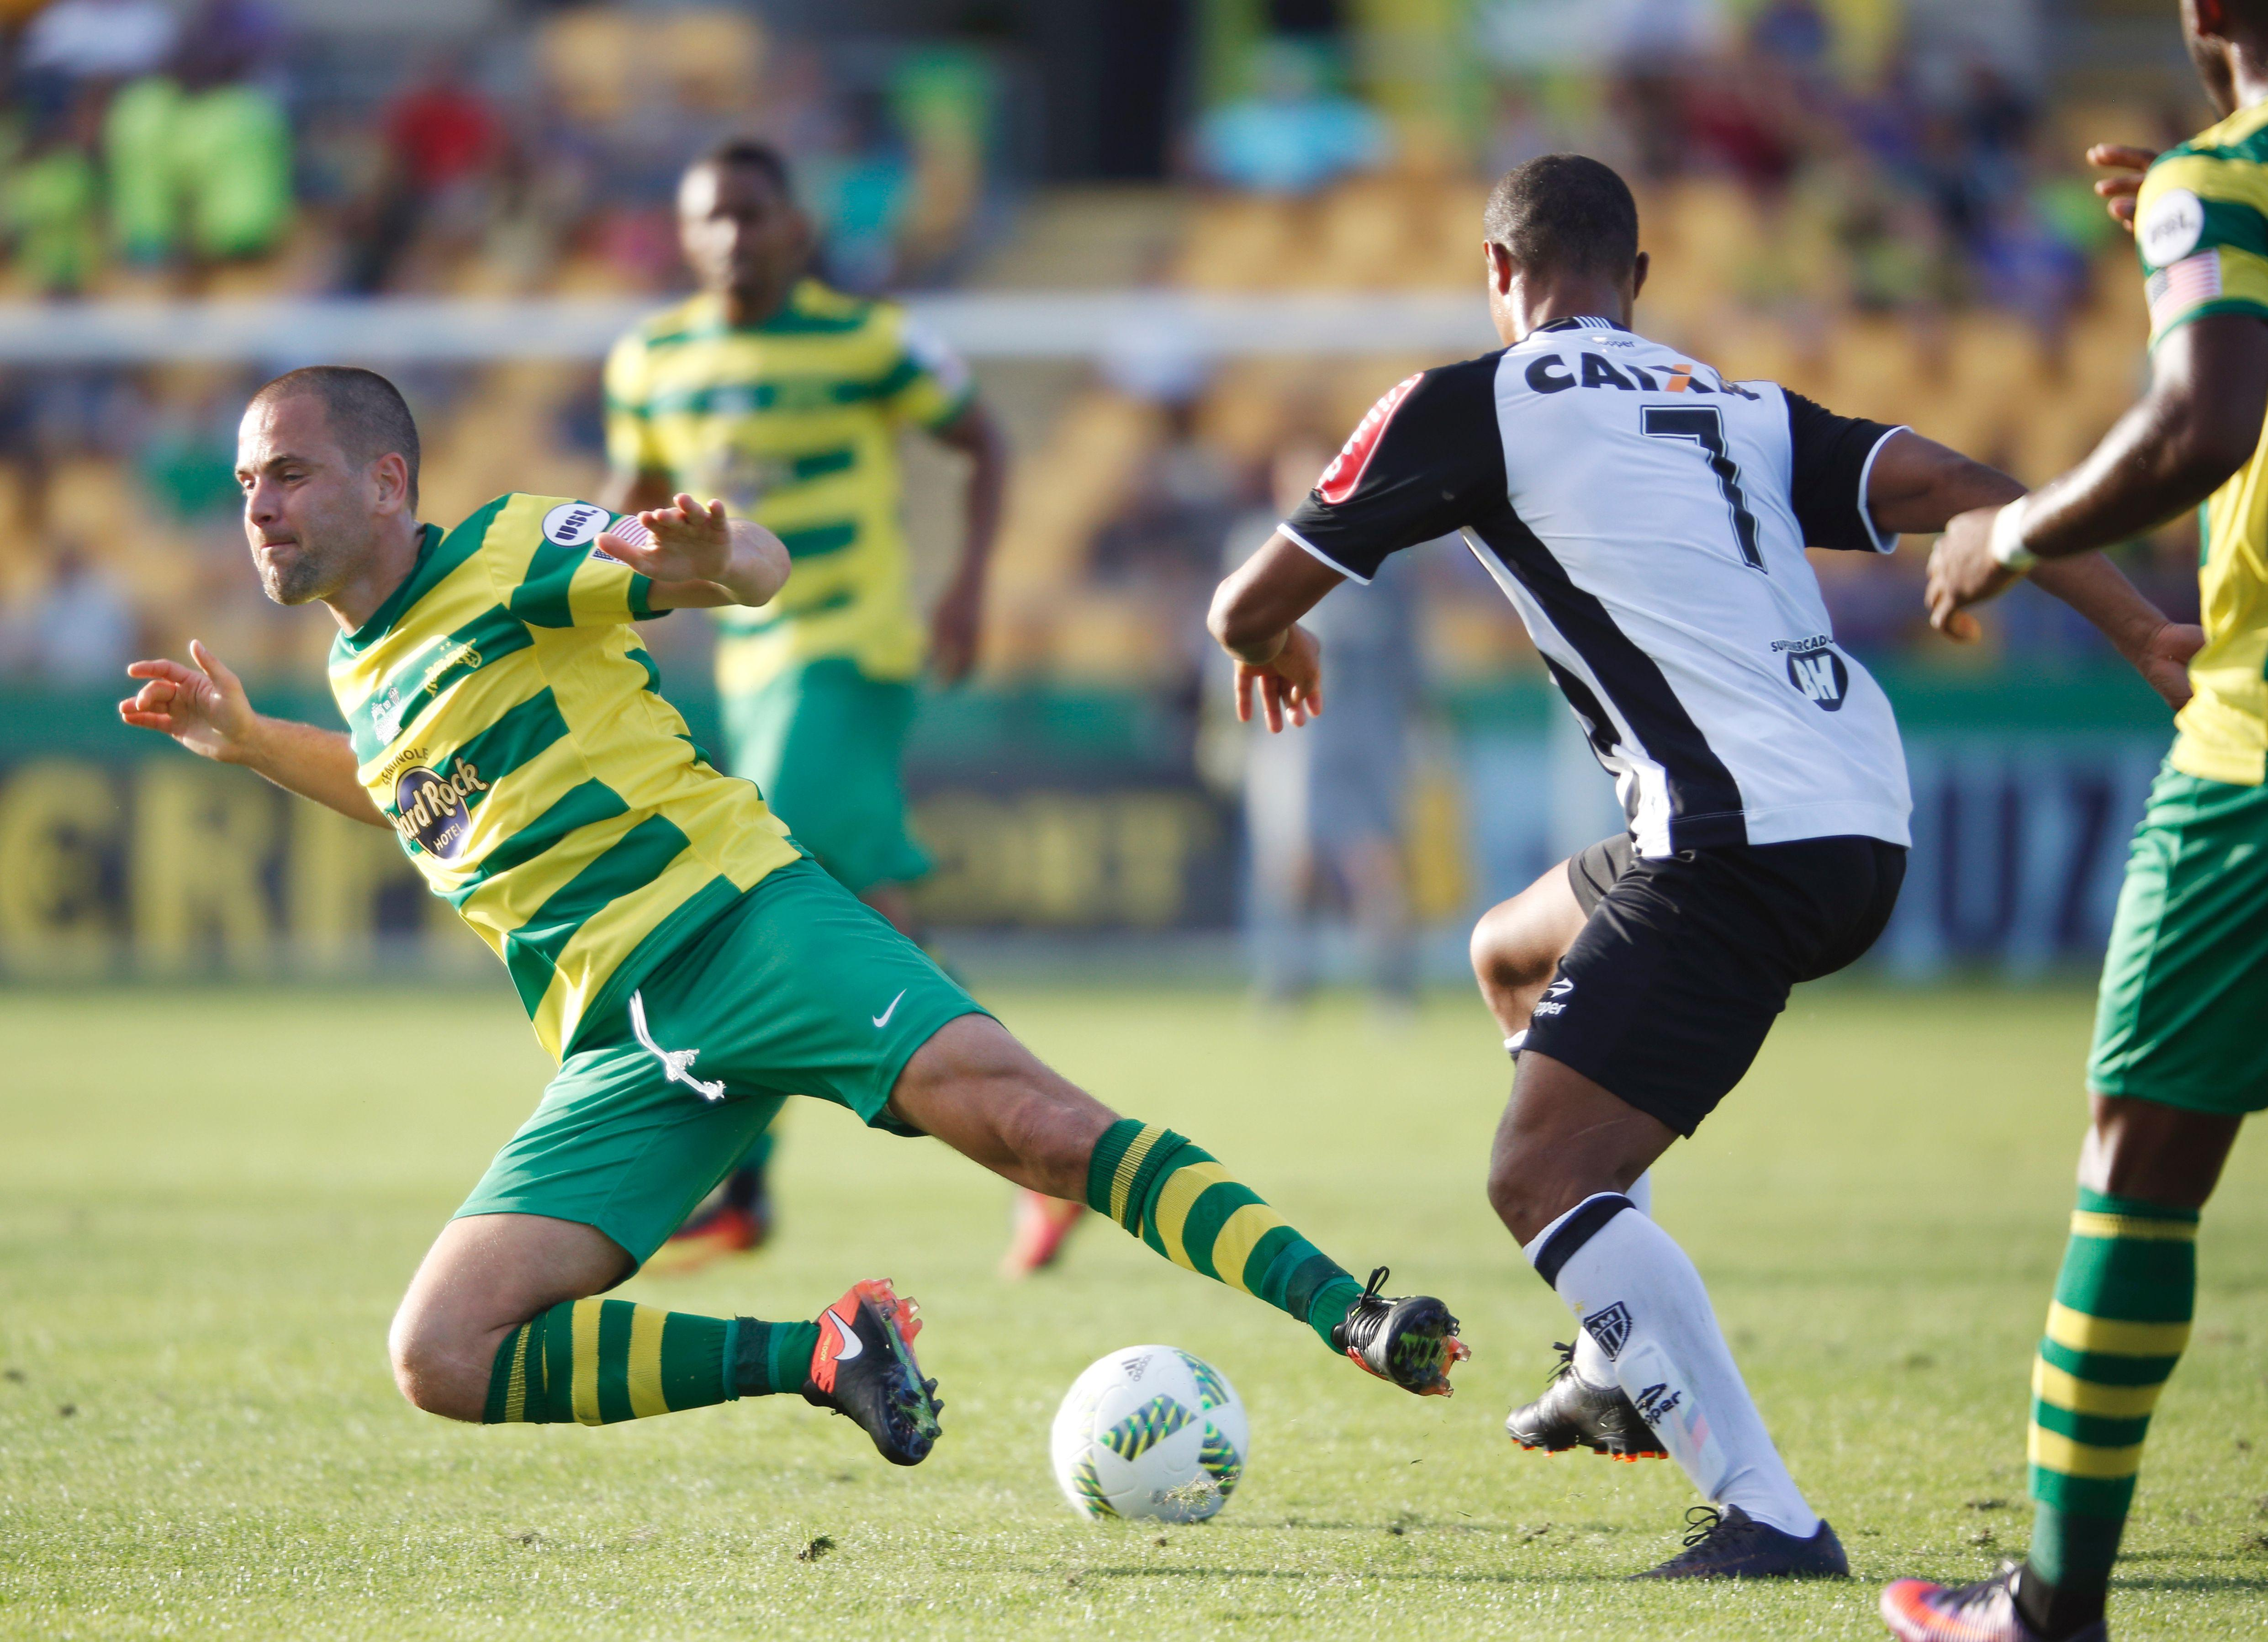 Joe Cole is currently with the Tampa Bay Rowdies